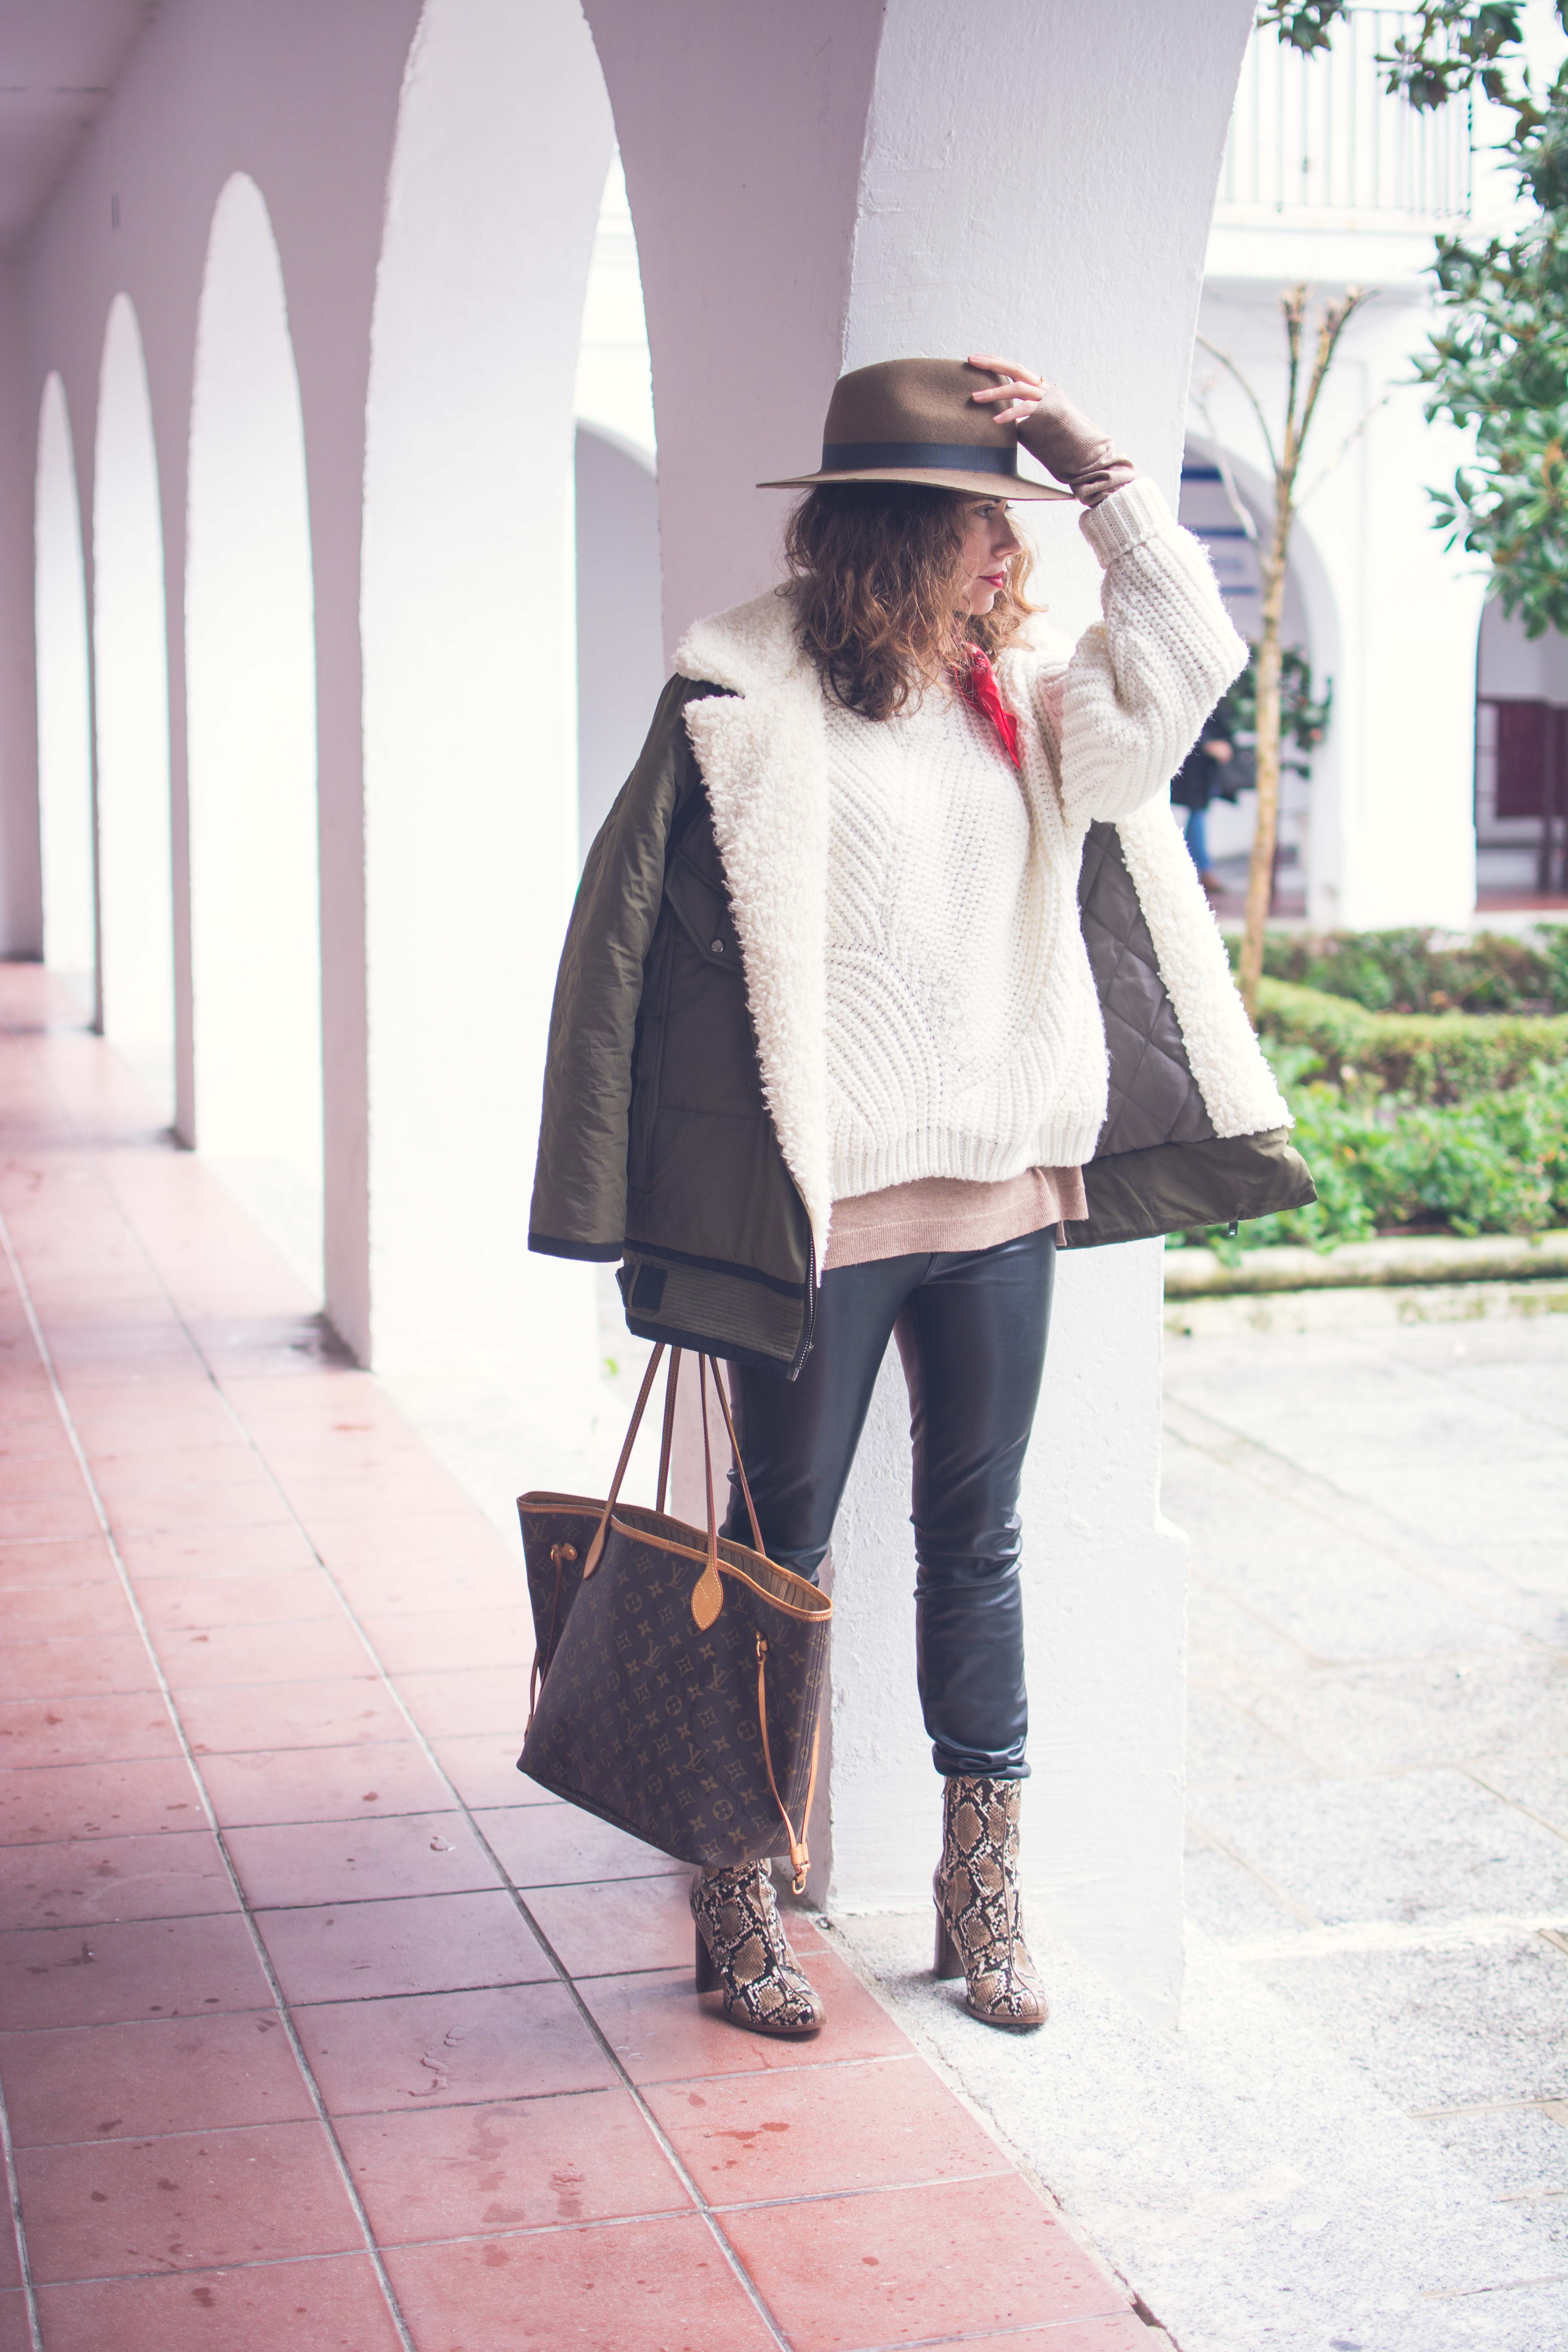 doube_pullover_sweater-country-style-cool_lemonade-rainy-look